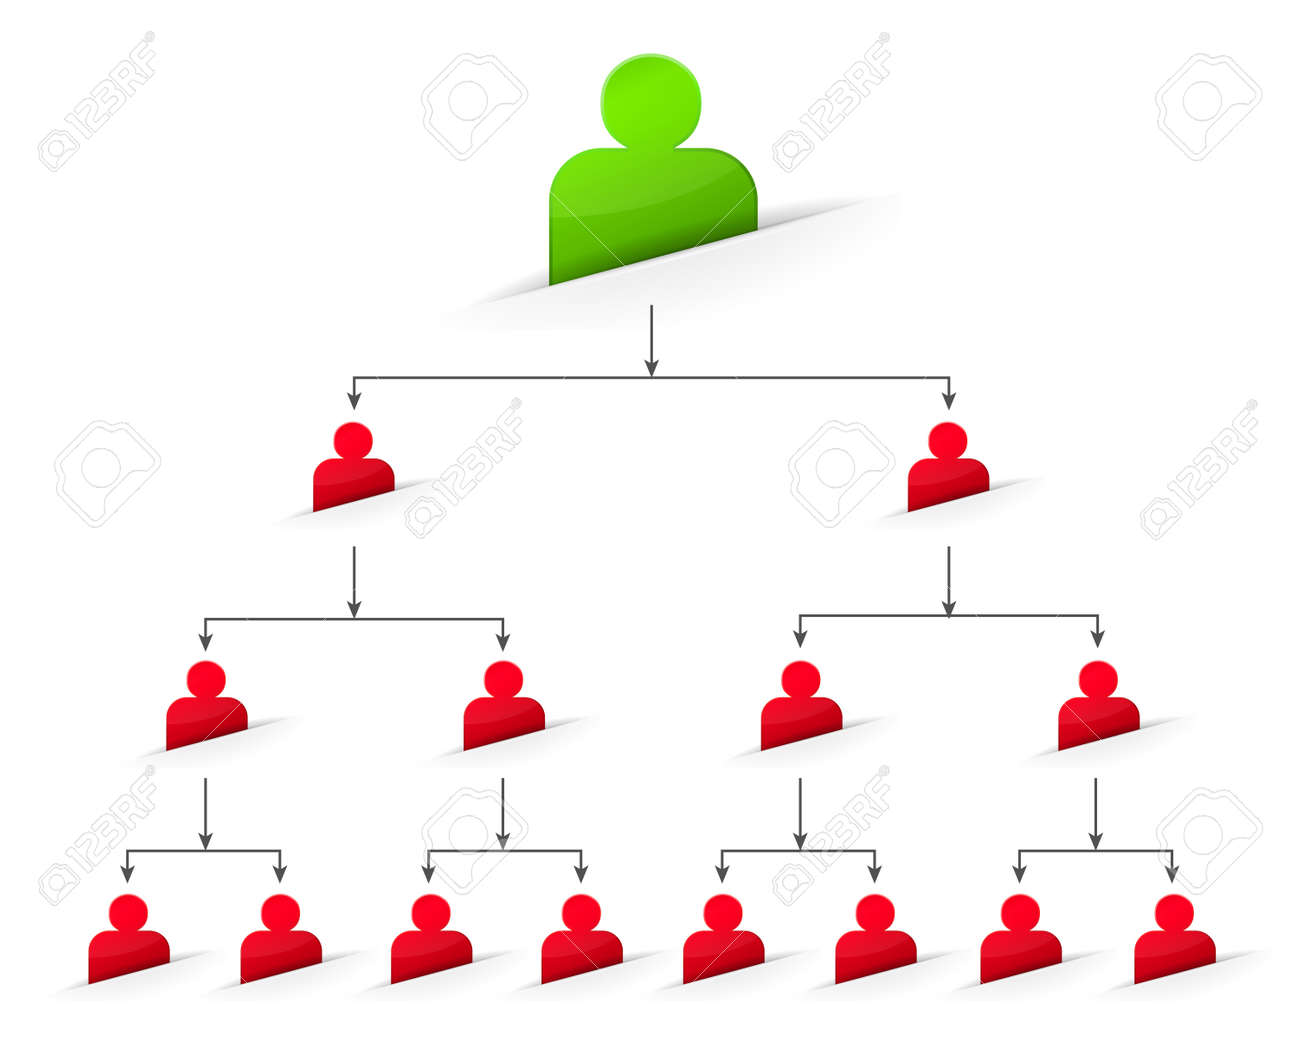 Office Organizational Corporate Hierarchy Tree Chart Of A Company - People  Symbol. Royalty Free Cliparts, Vectors, And Stock Illustration. Image  29653932.